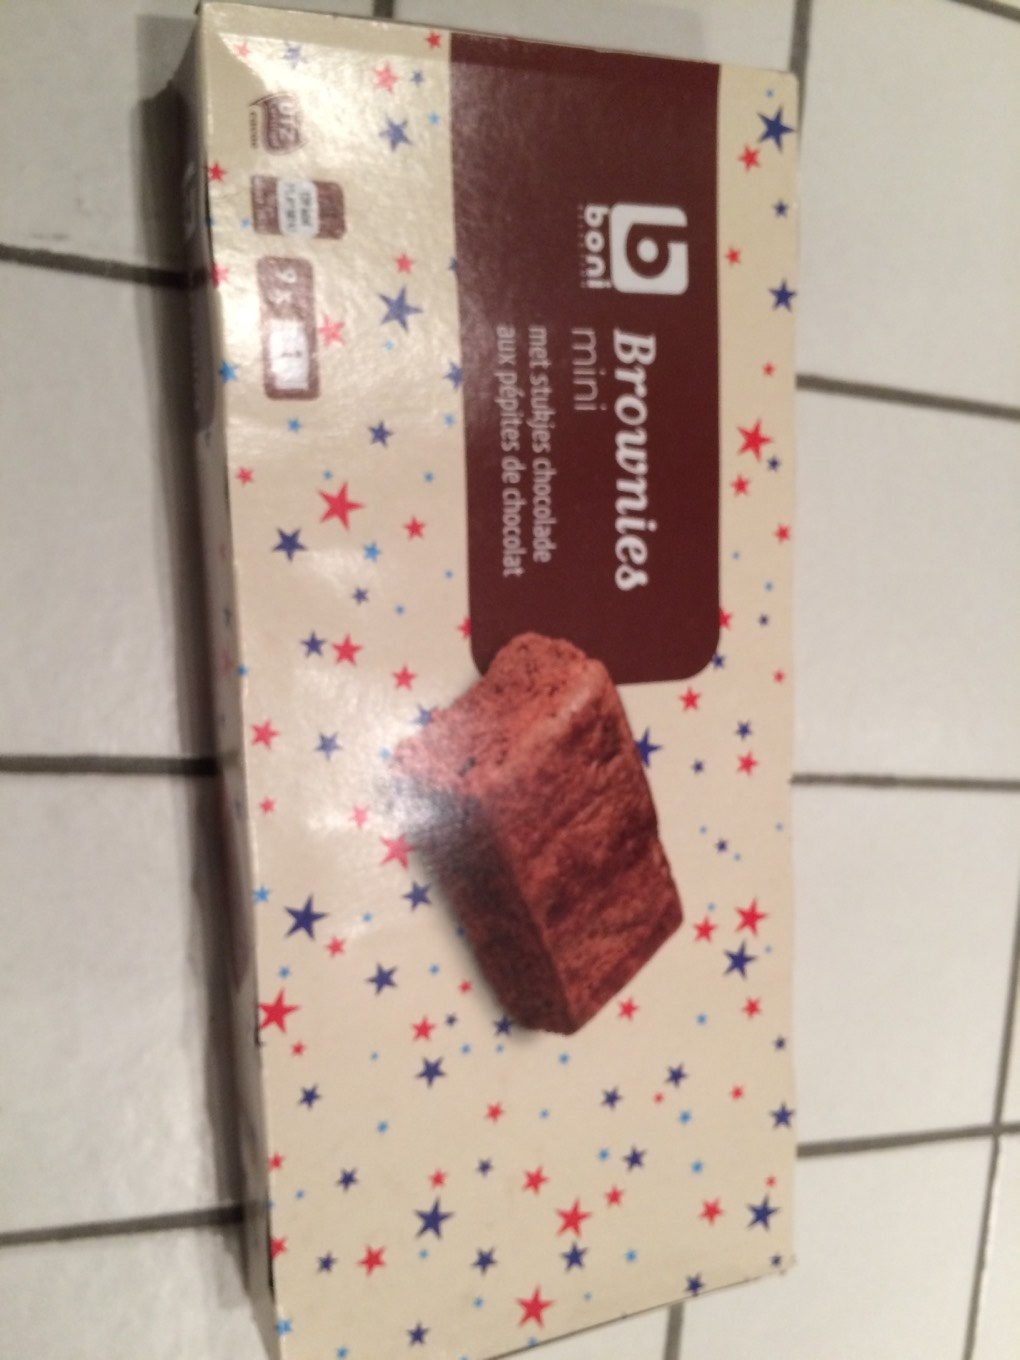 Brownies mini - Product - fr